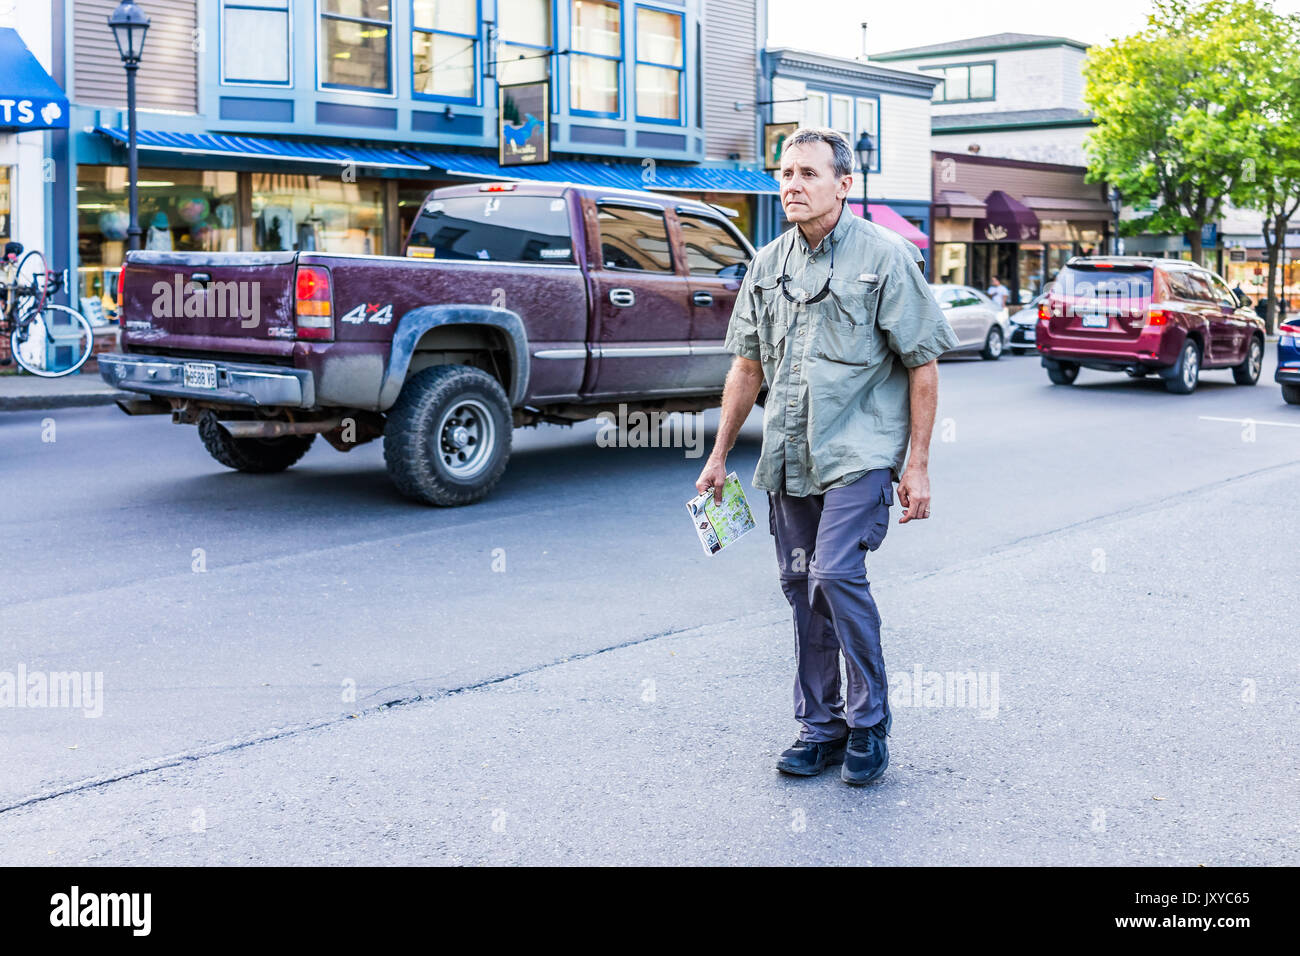 Bar Harbor, USA - June 8, 2017: Lost tourist man holding map crossing sidewalk street in downtown village in summer on main road - Stock Image